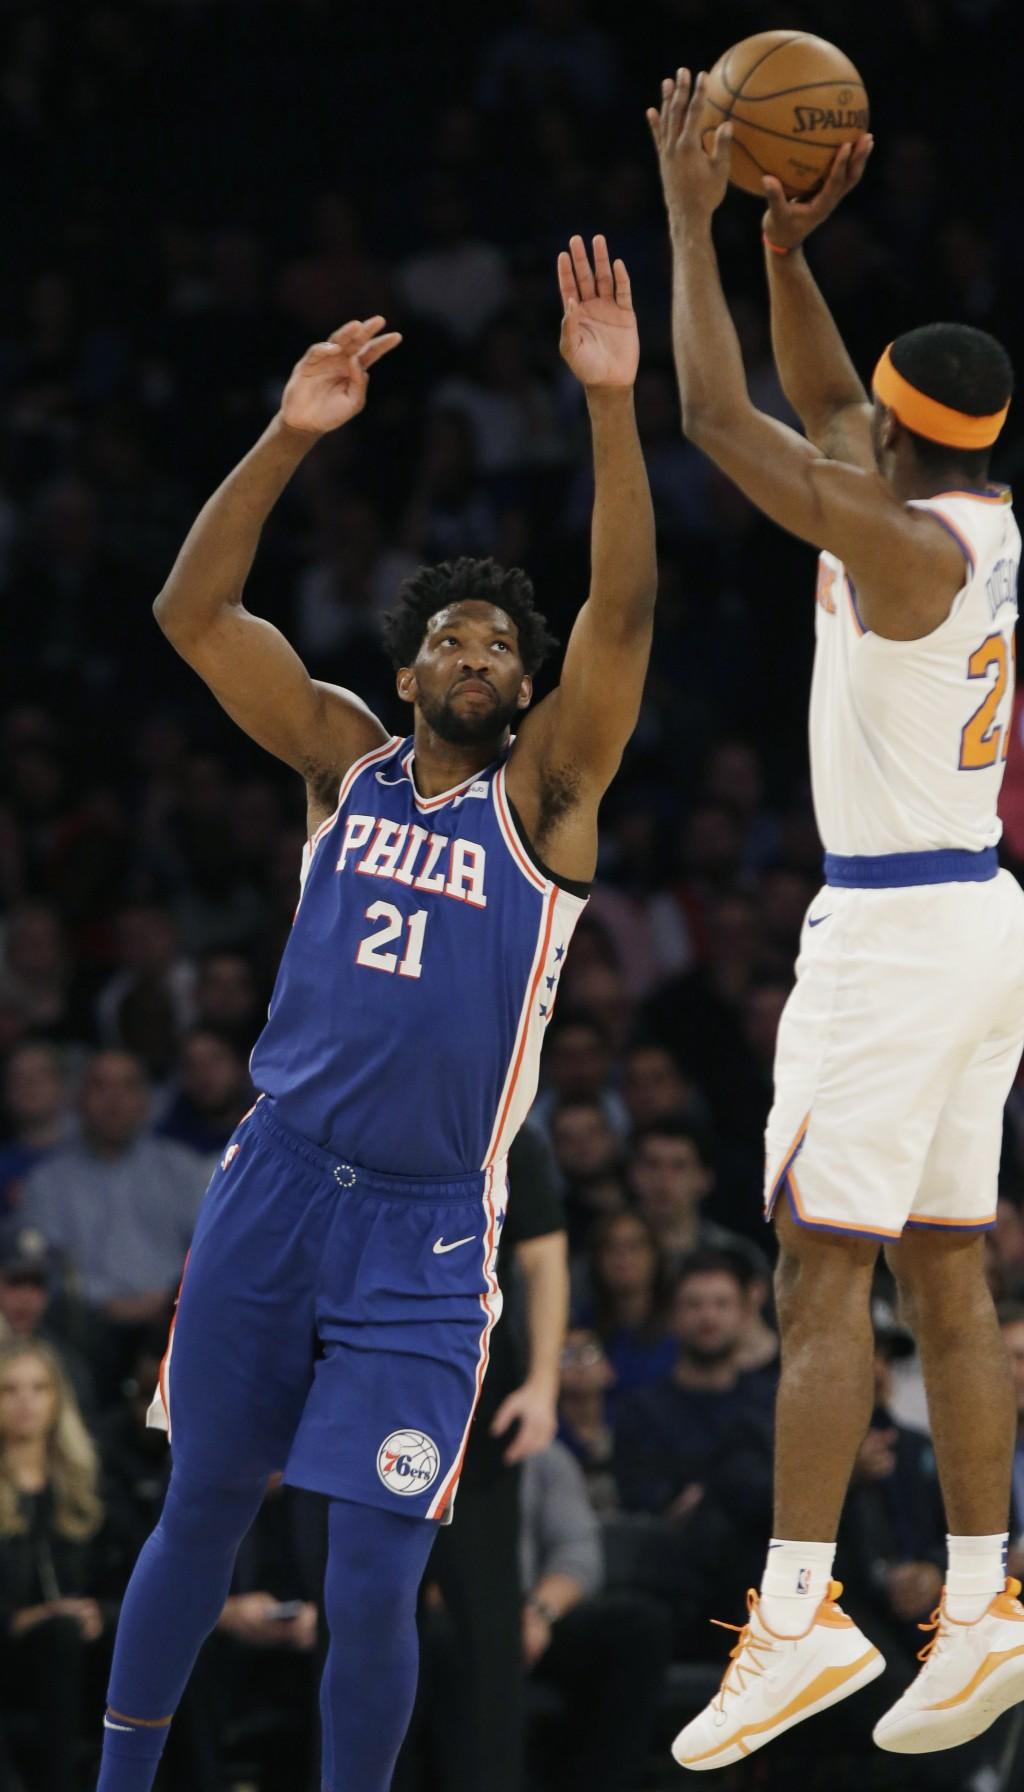 Philadelphia 76ers' Joel Embiid (21) runs out to defend a shot by New York Knicks' Damyean Dotson (21) during the first half of an NBA basketball game